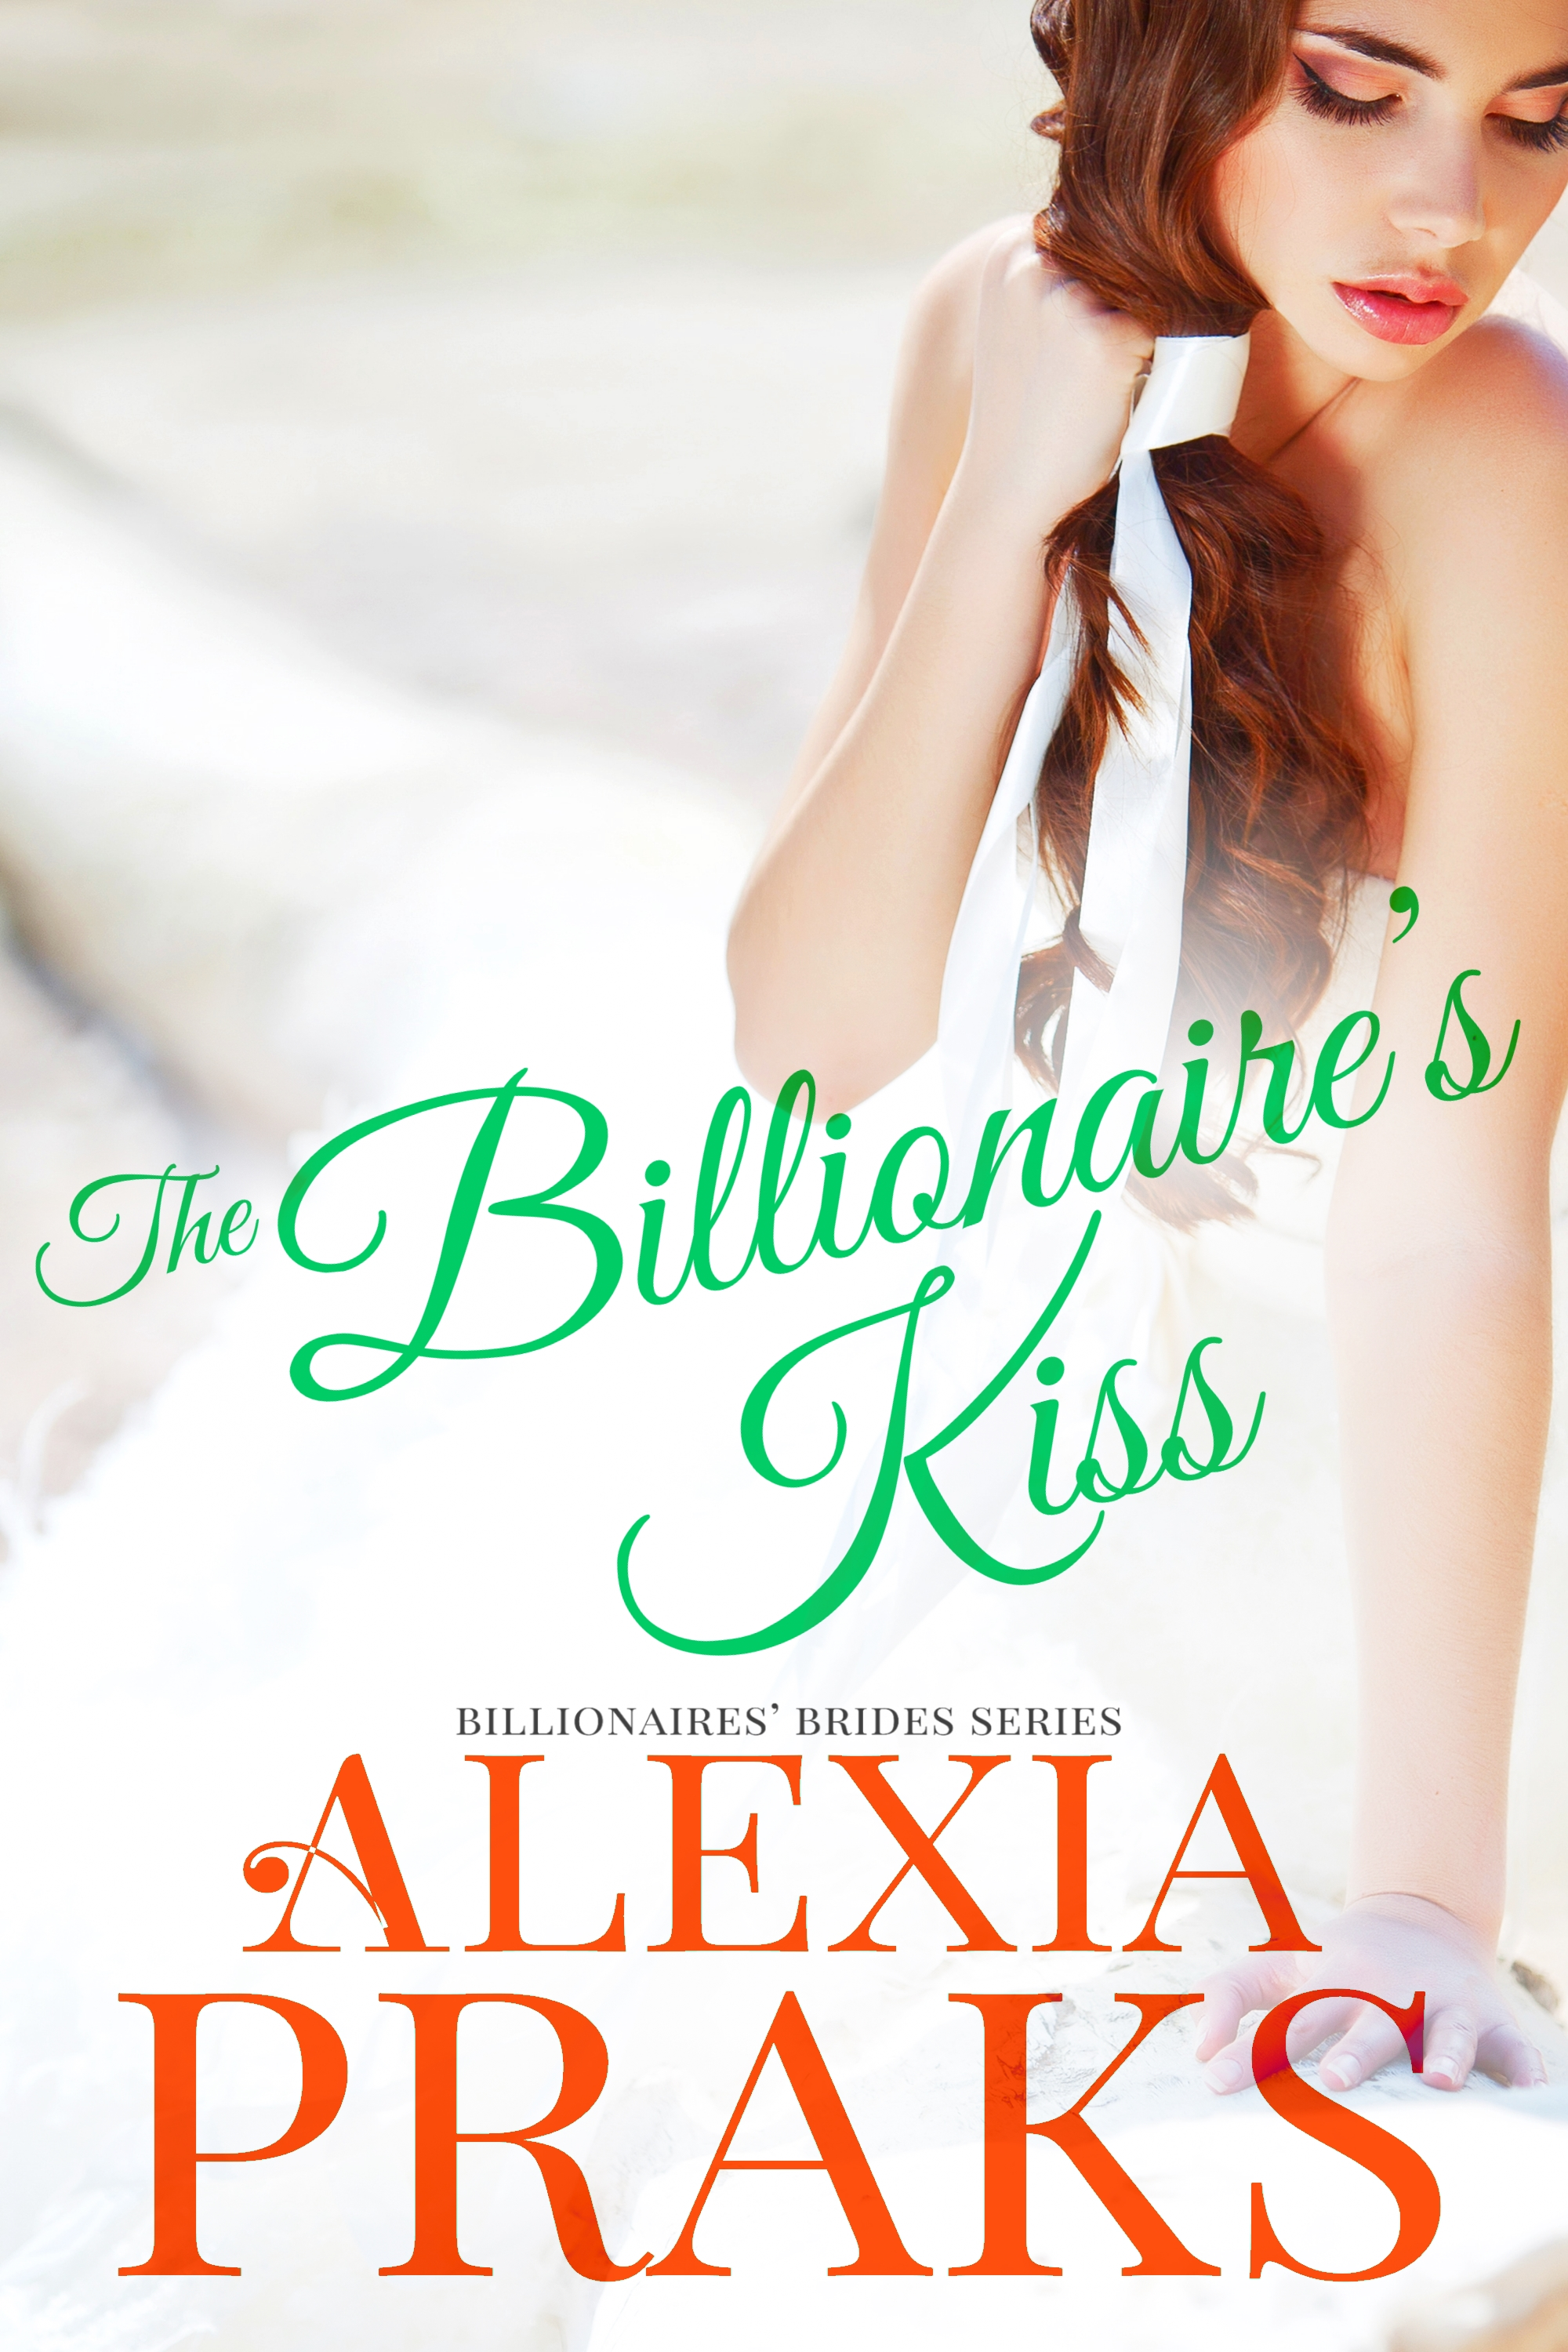 contemporary romance, contemporary romance ebooks, contemporary romance alpha male, contemporary romance billionaire, contemporary romance series, contemporary romance marriage, contemporary romance virgin heroine, contemporary romance author, alexia praks